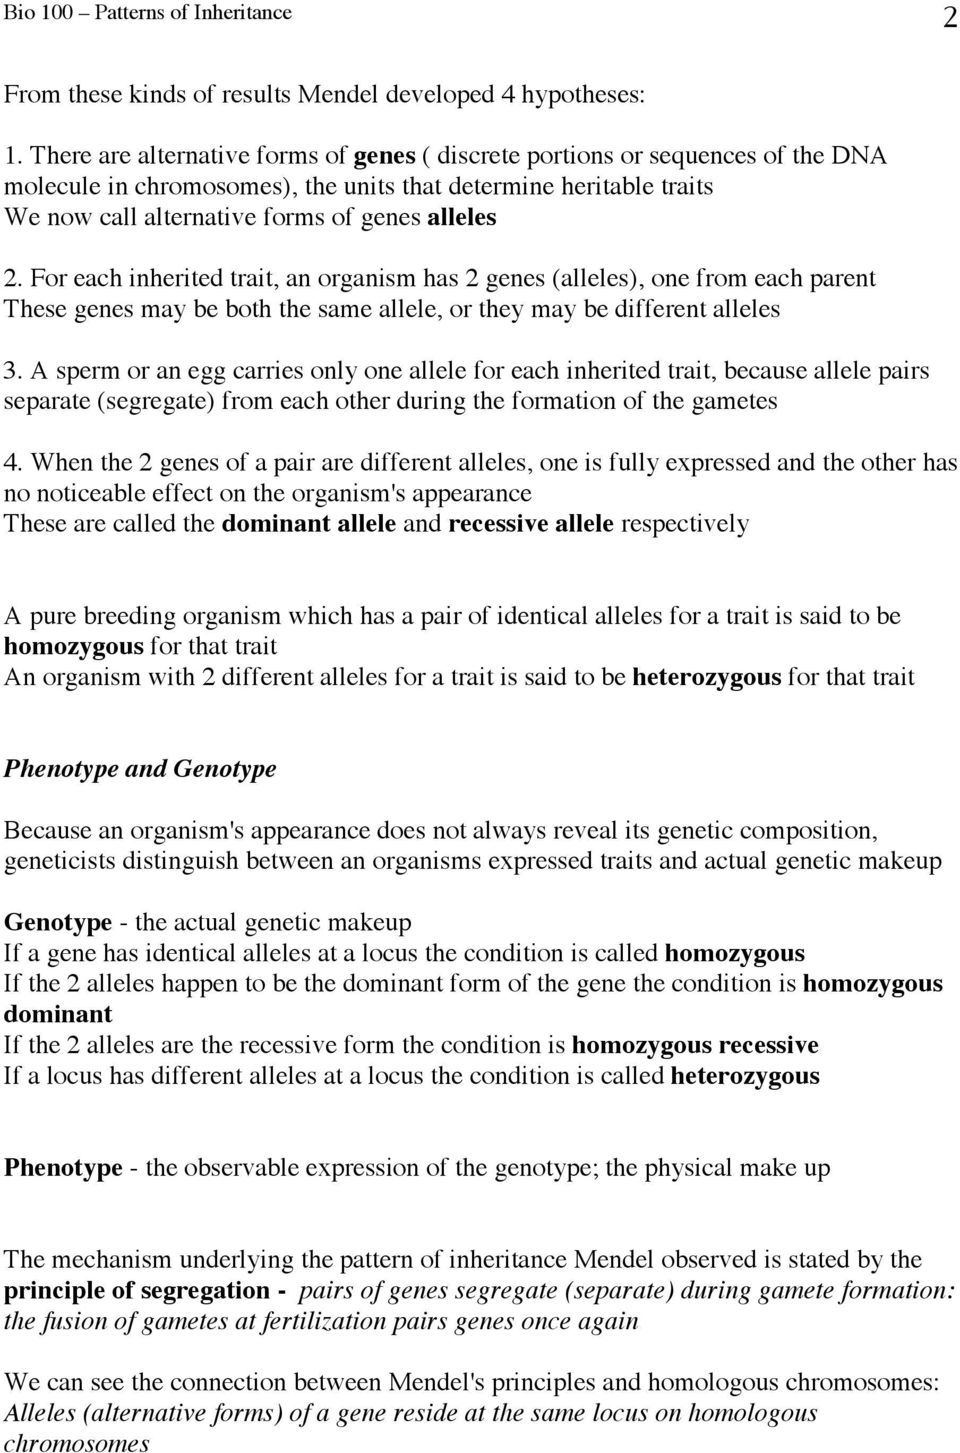 chapter 9 patterns of inheritance guided reading activities answer key